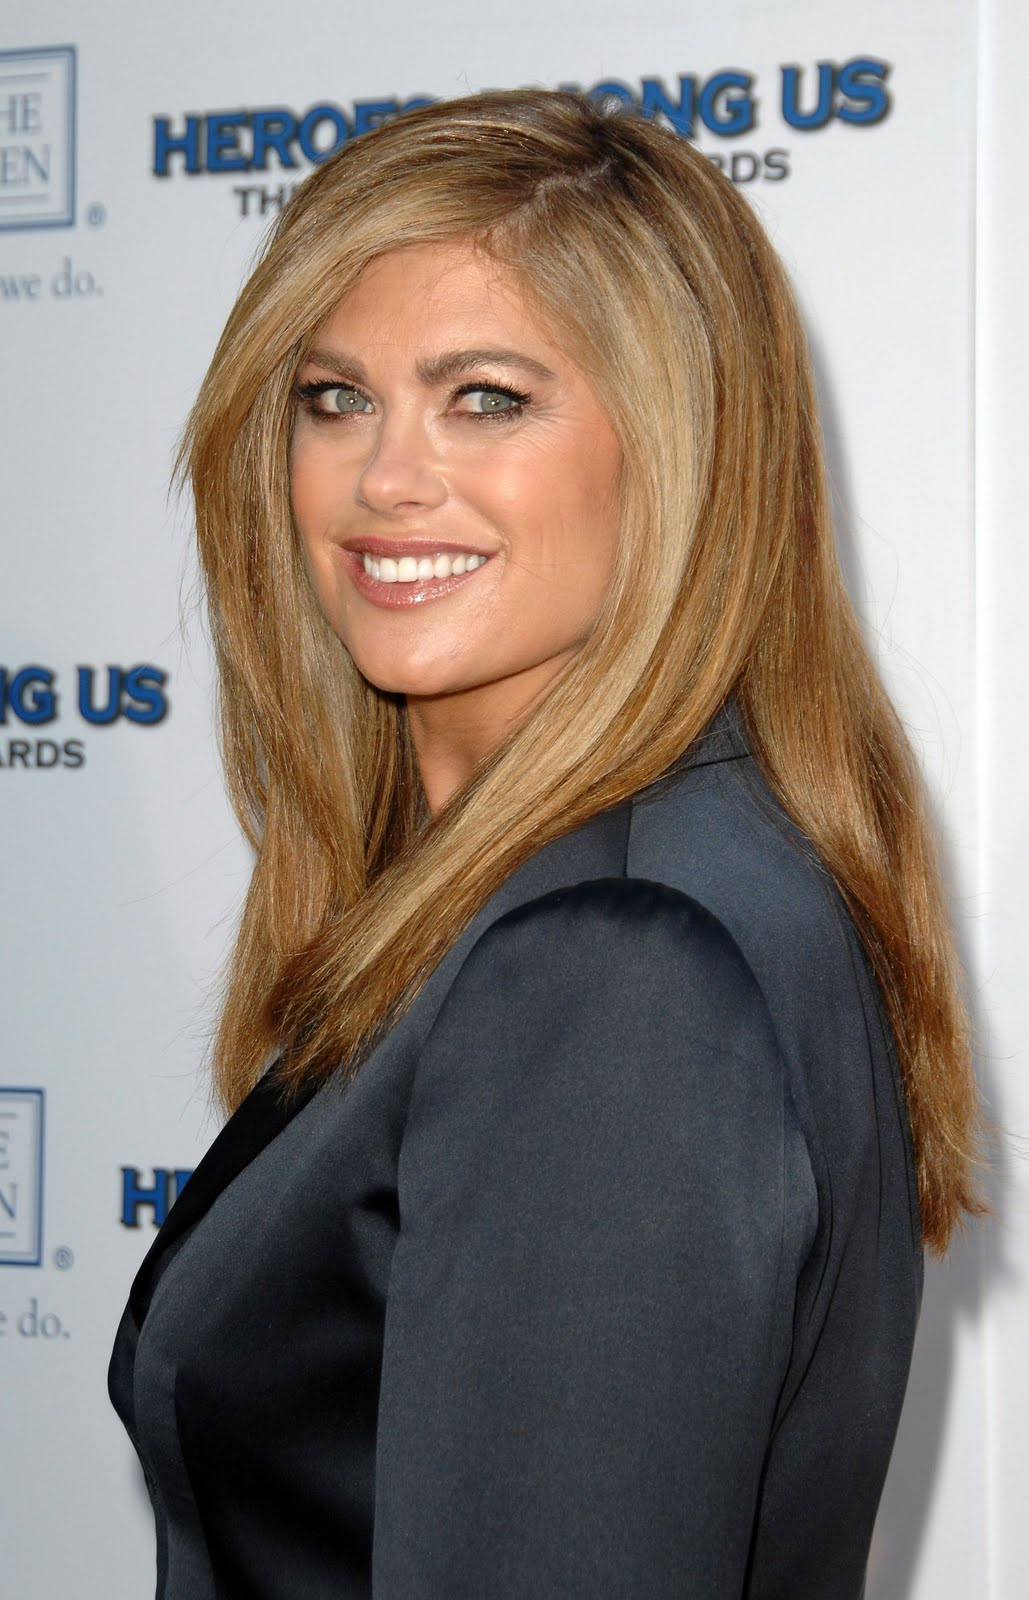 Kathy Ireland,Kathy Ireland hot,hot Kathy Ireland,Kathy Ireland hd,Kathy Ireland hd wallpapers,Kathy Ireland hd photos,Kathy Ireland hd pictures,Kathy Ireland hot hd wallpapers,Kathy Ireland high resolution pictures,Kathy Ireland high resolution wallpapers,Kathy Ireland latest photoshoot,Kathy Ireland photoshoot,Kathy Ireland hot in swimsuit,Kathy Ireland swimsuit,Kathy Ireland hot navel pics,Kathy Ireland navel hot,Kathy Ireland hot leg show,Kathy Ireland navel,Kathy Ireland topless pictutres,Kathy Ireland backless pictures,Kathy Ireland boyfriend,Kathy Ireland family,Kathy Ireland height,Kathy Ireland weight,Kathy Ireland ads,Kathy Ireland wedding,Kathy Ireland fashion,Kathy Ireland twitter,Kathy Ireland on facebook,Kathy Ireland online view,indian online view,hollywood actress Kathy Ireland hot